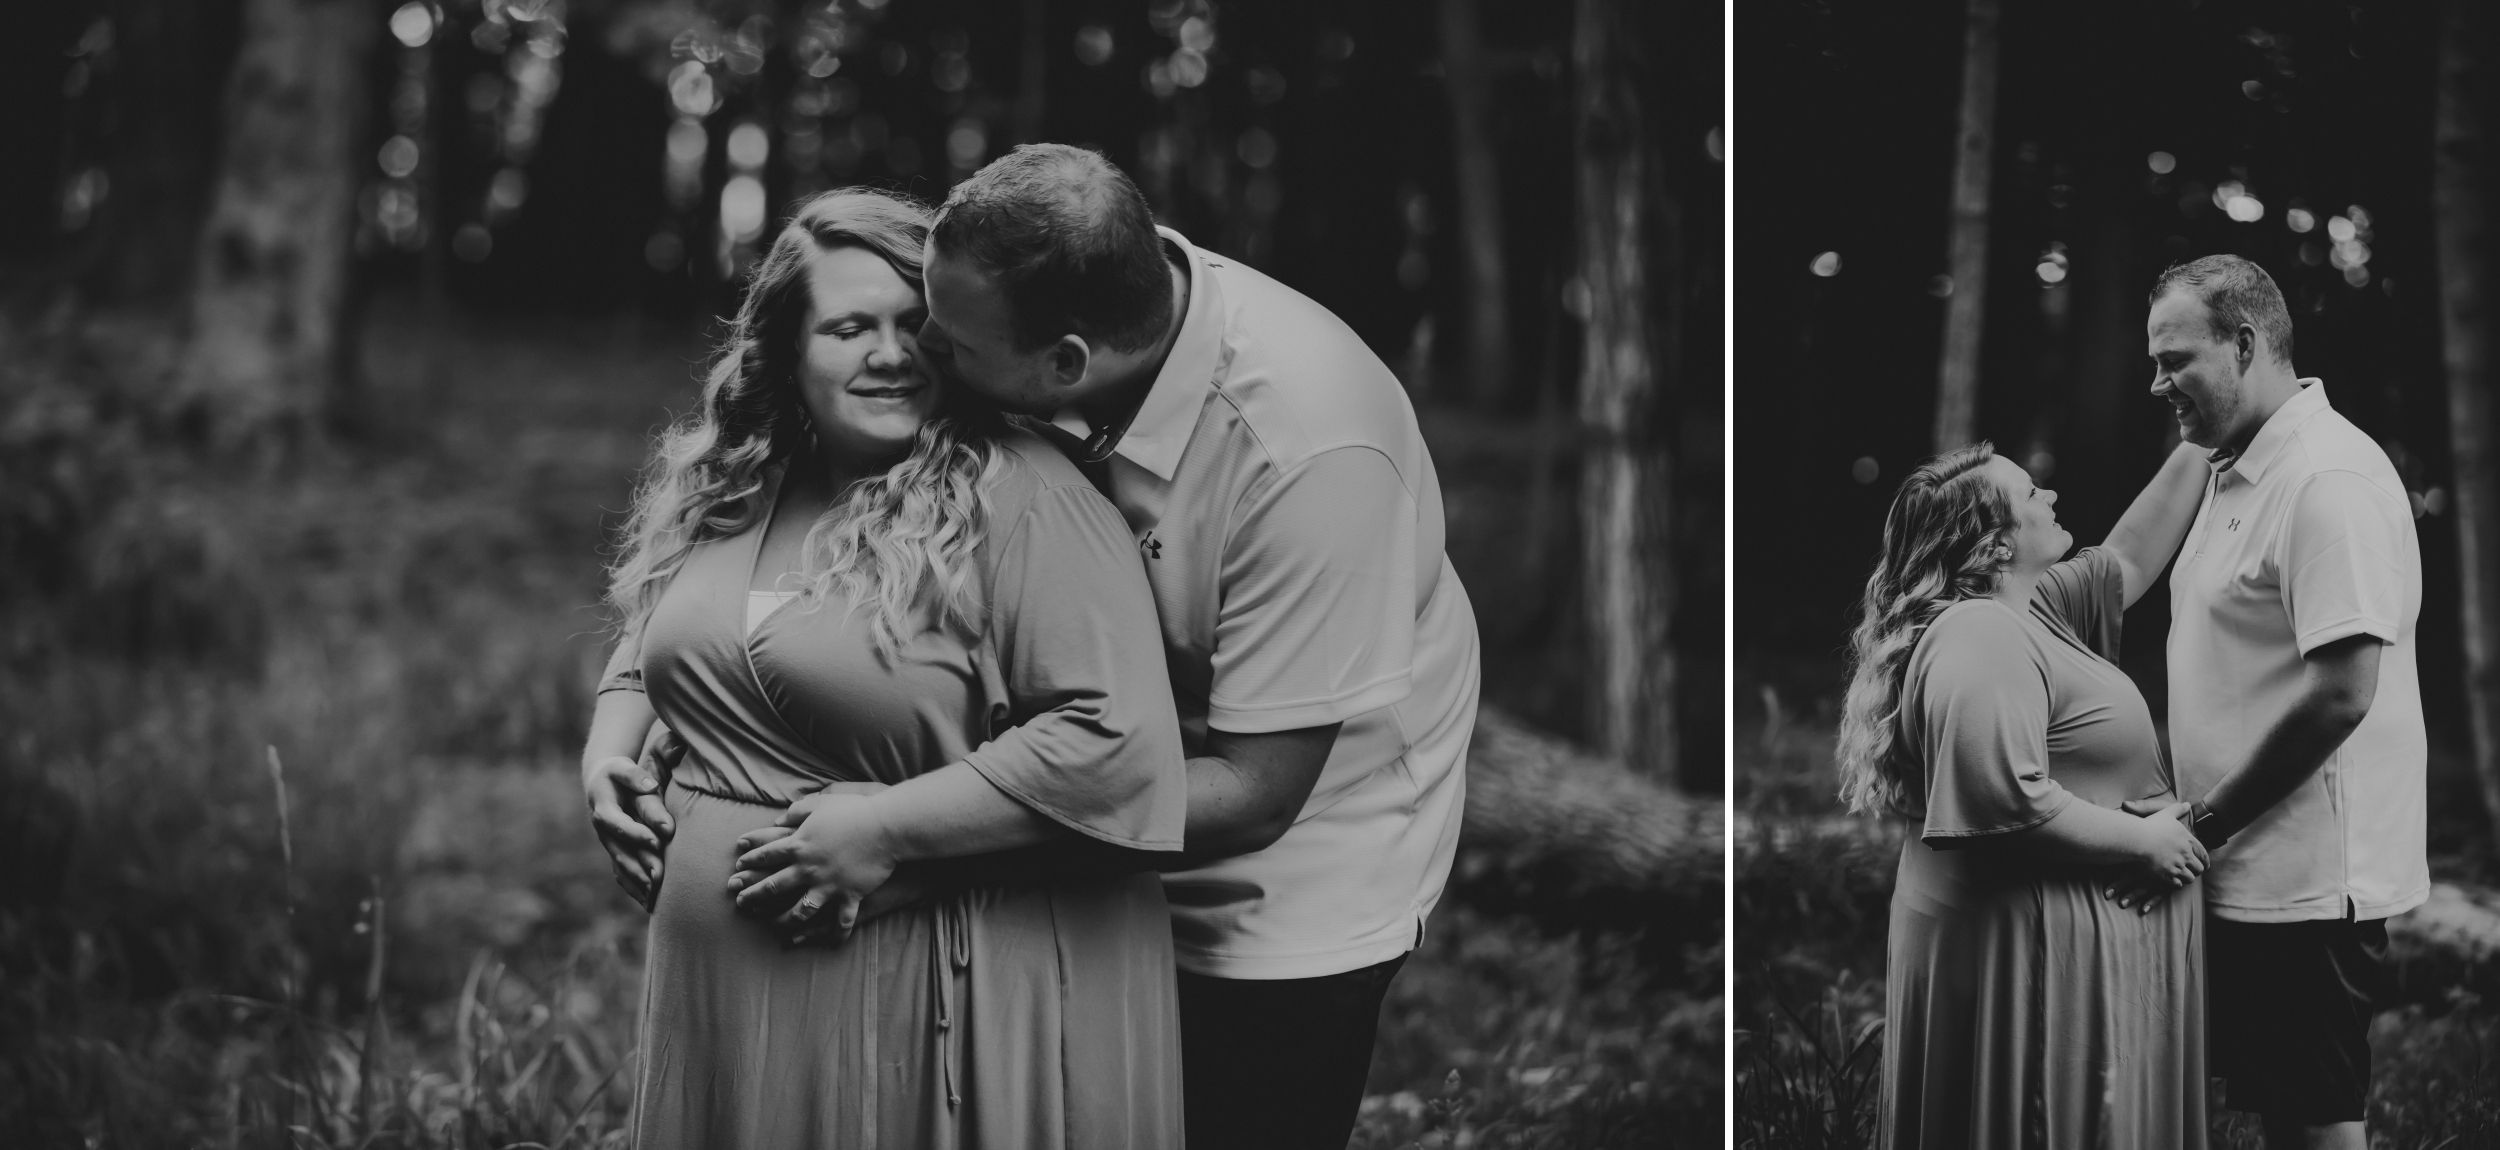 Black and white photos of a man and pregnant woman embracing in the woods.